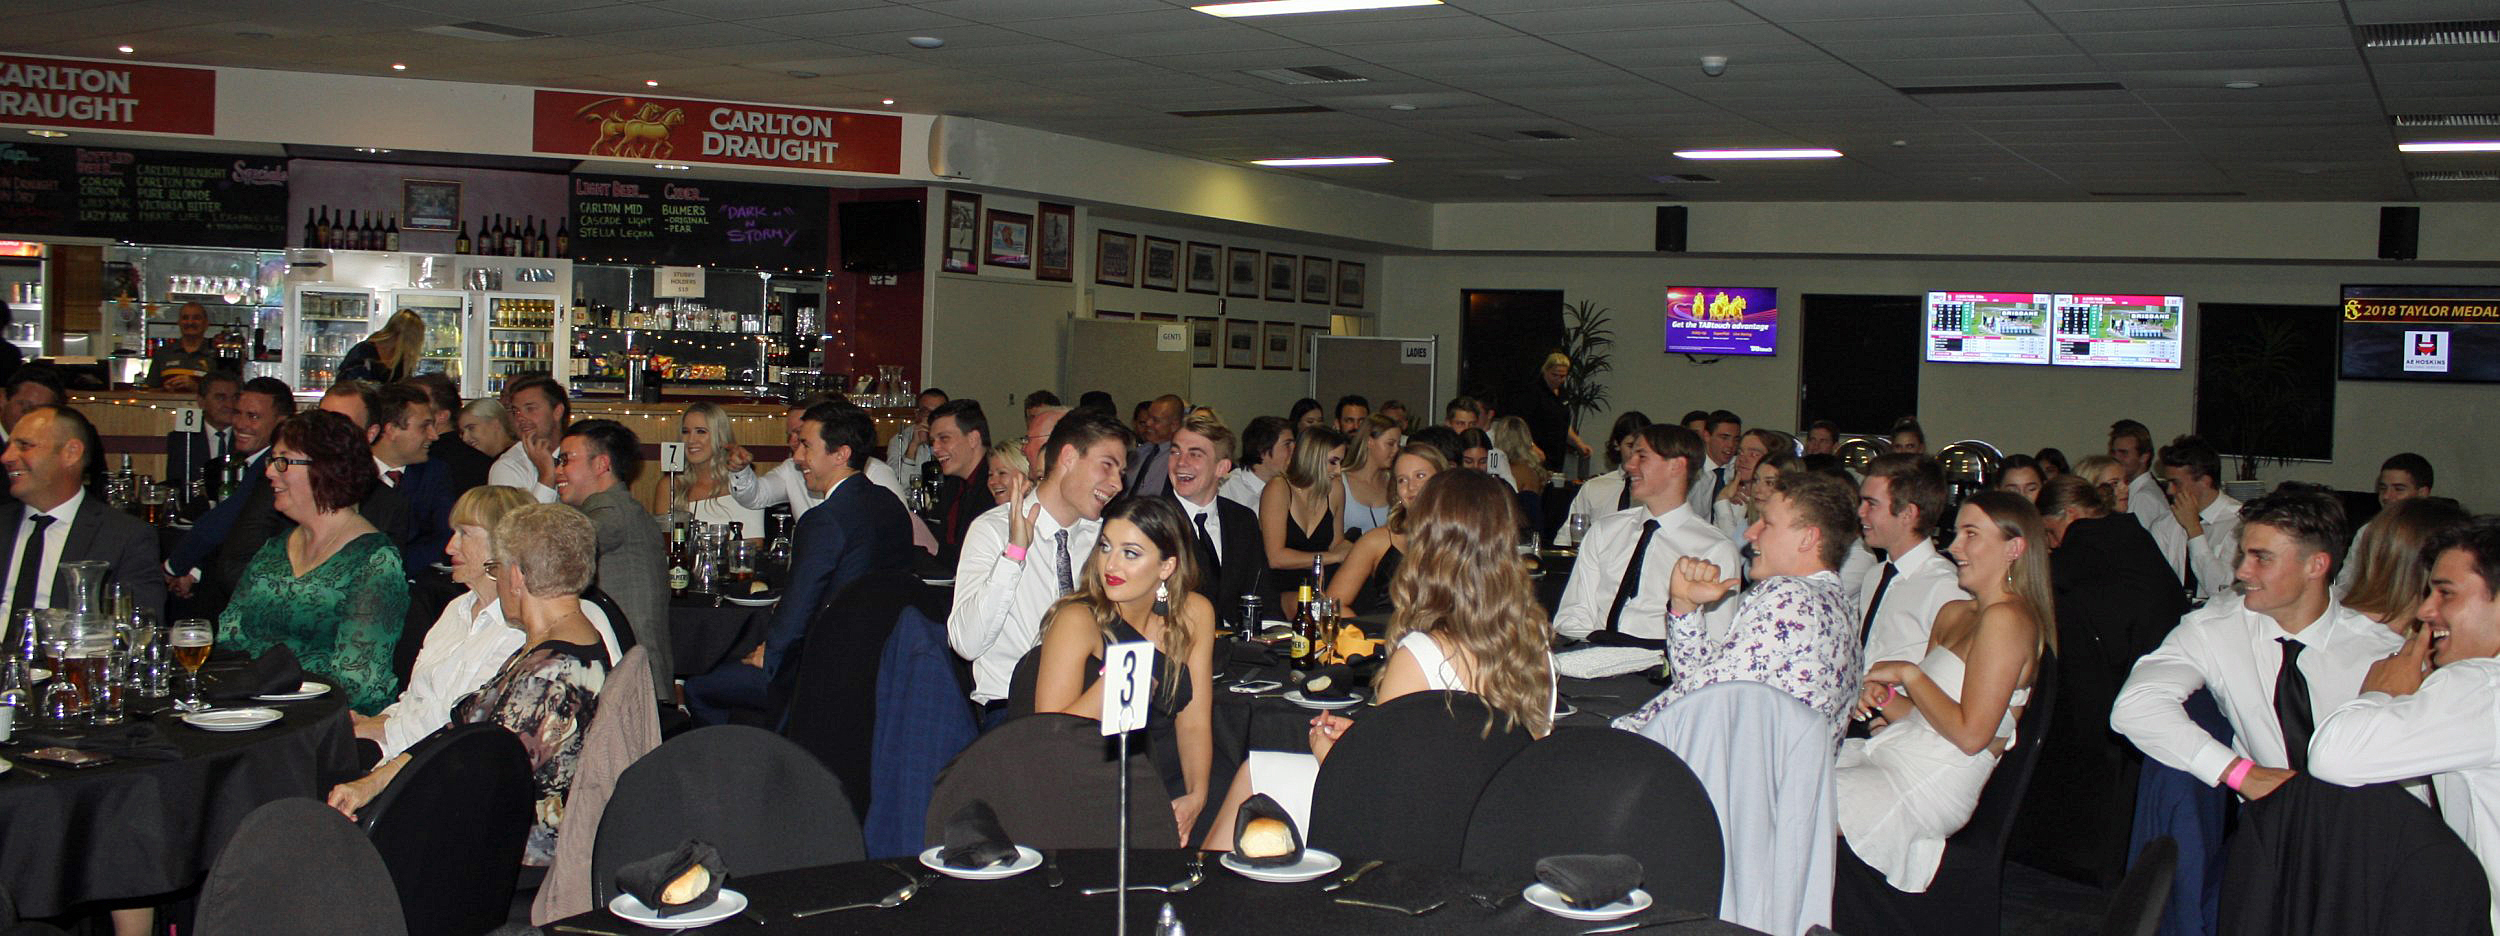 2018 WAFL Colts Award night (6)